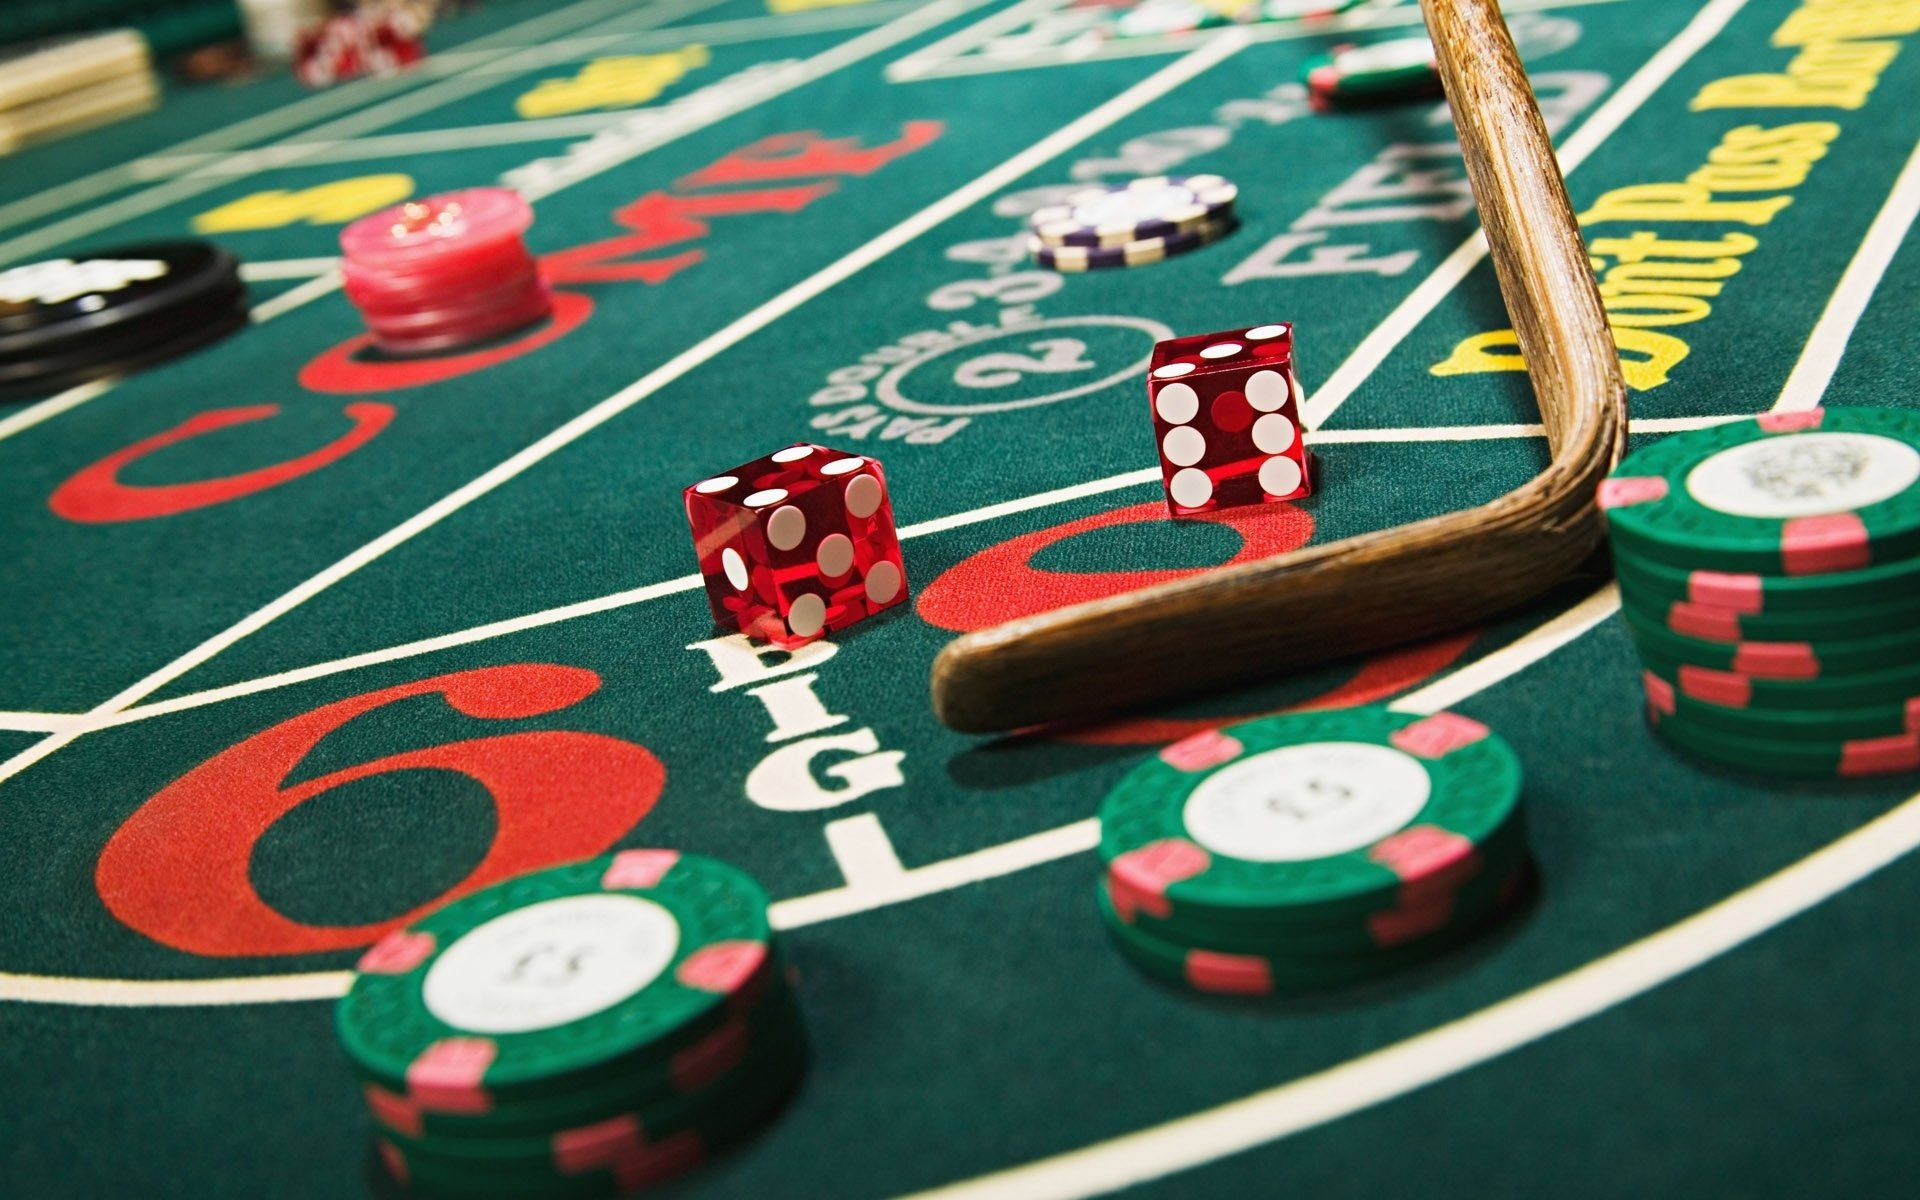 Chat over actively participating in casino games online about mobiles